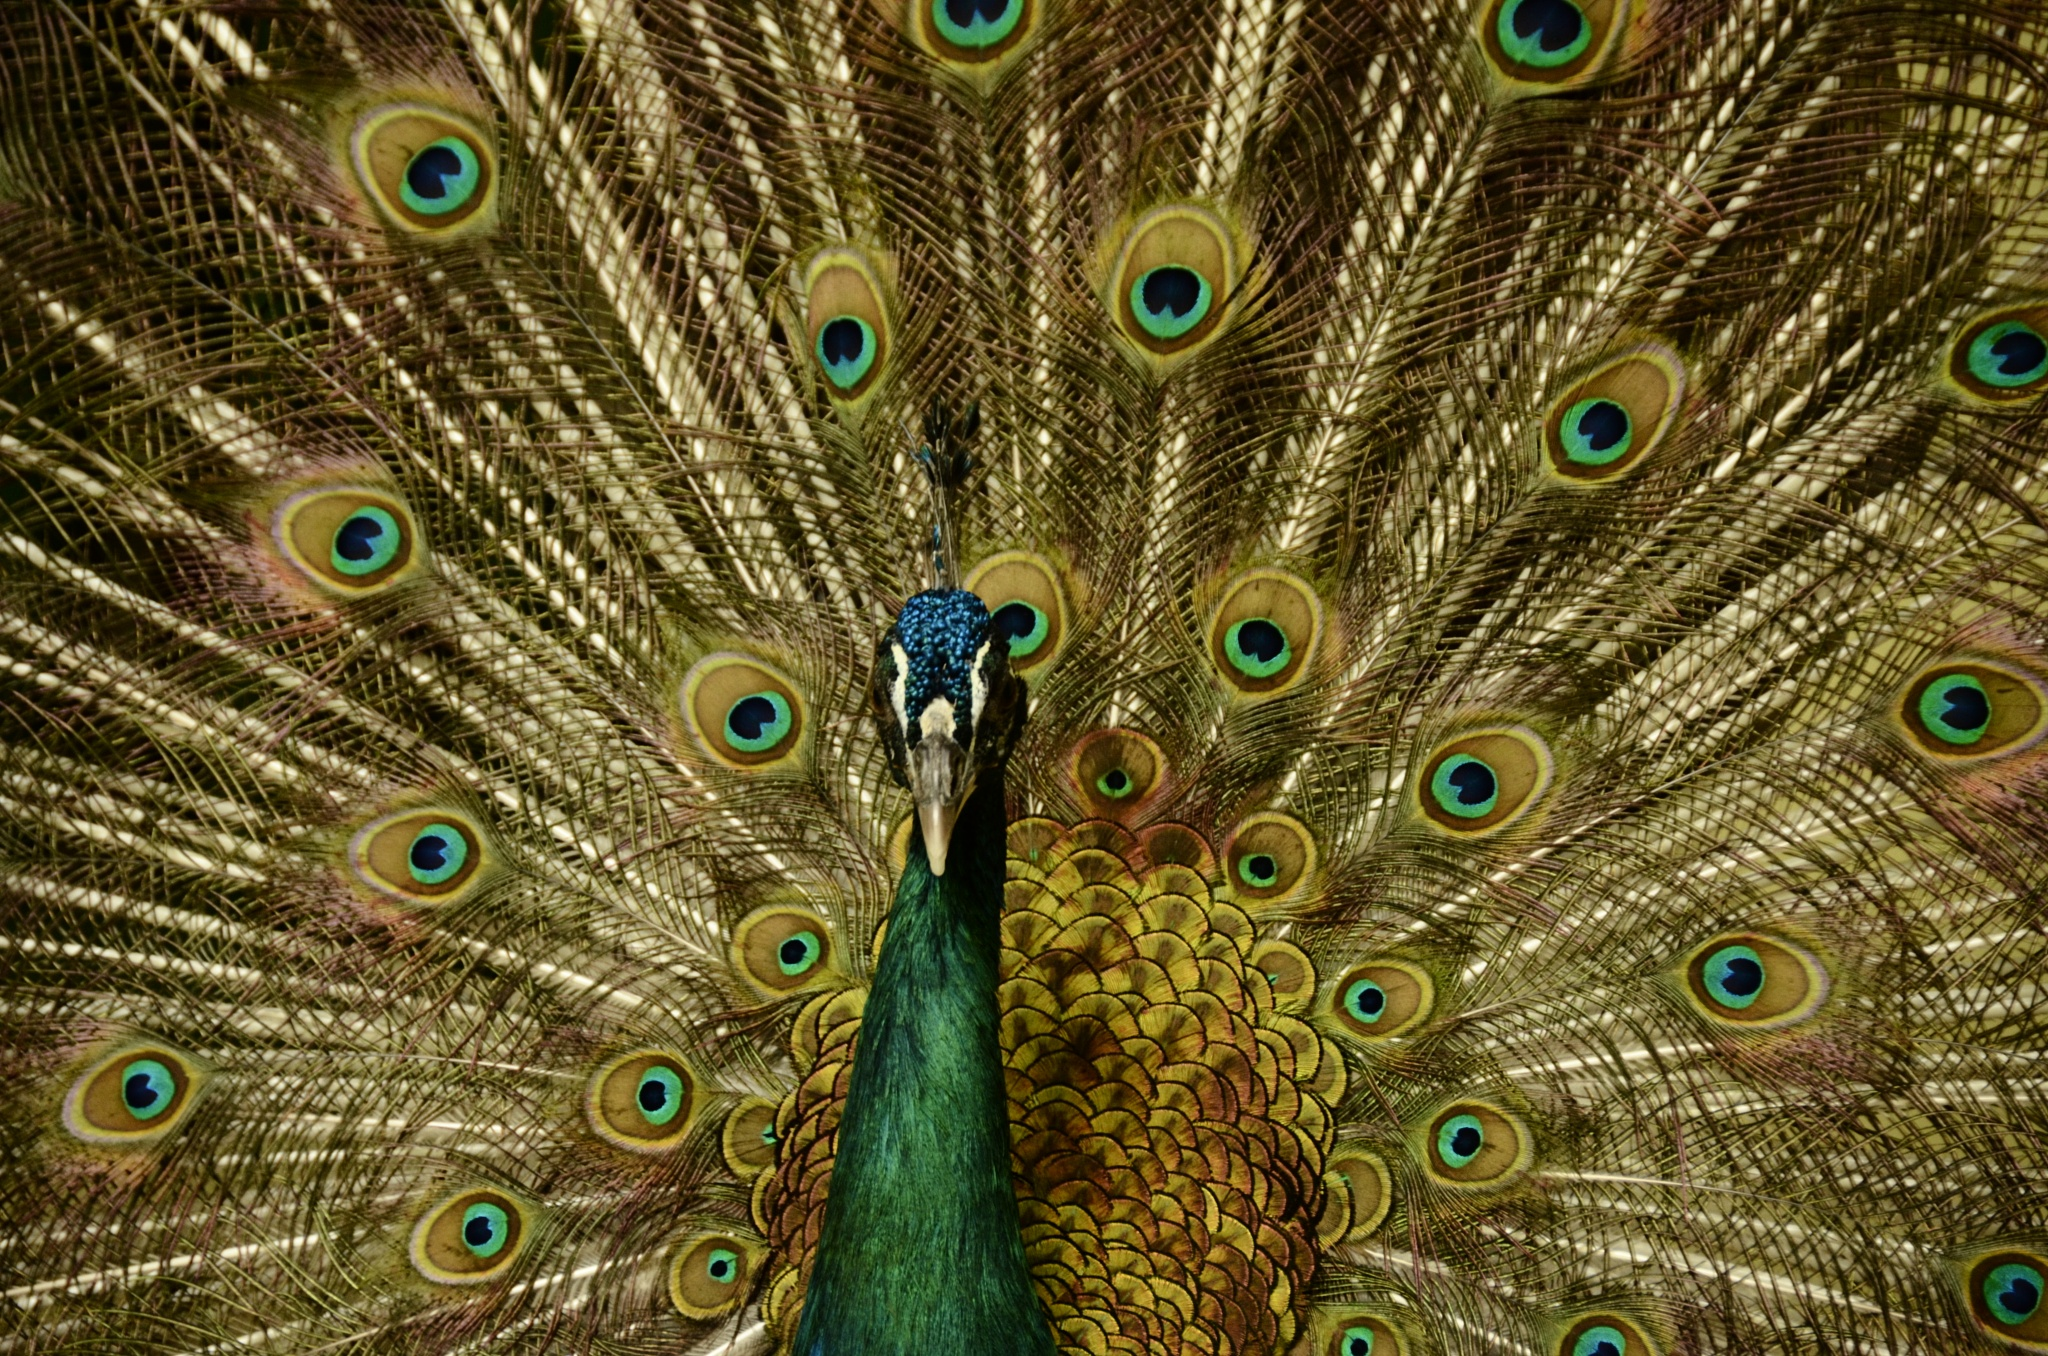 Peacock by trevor keville